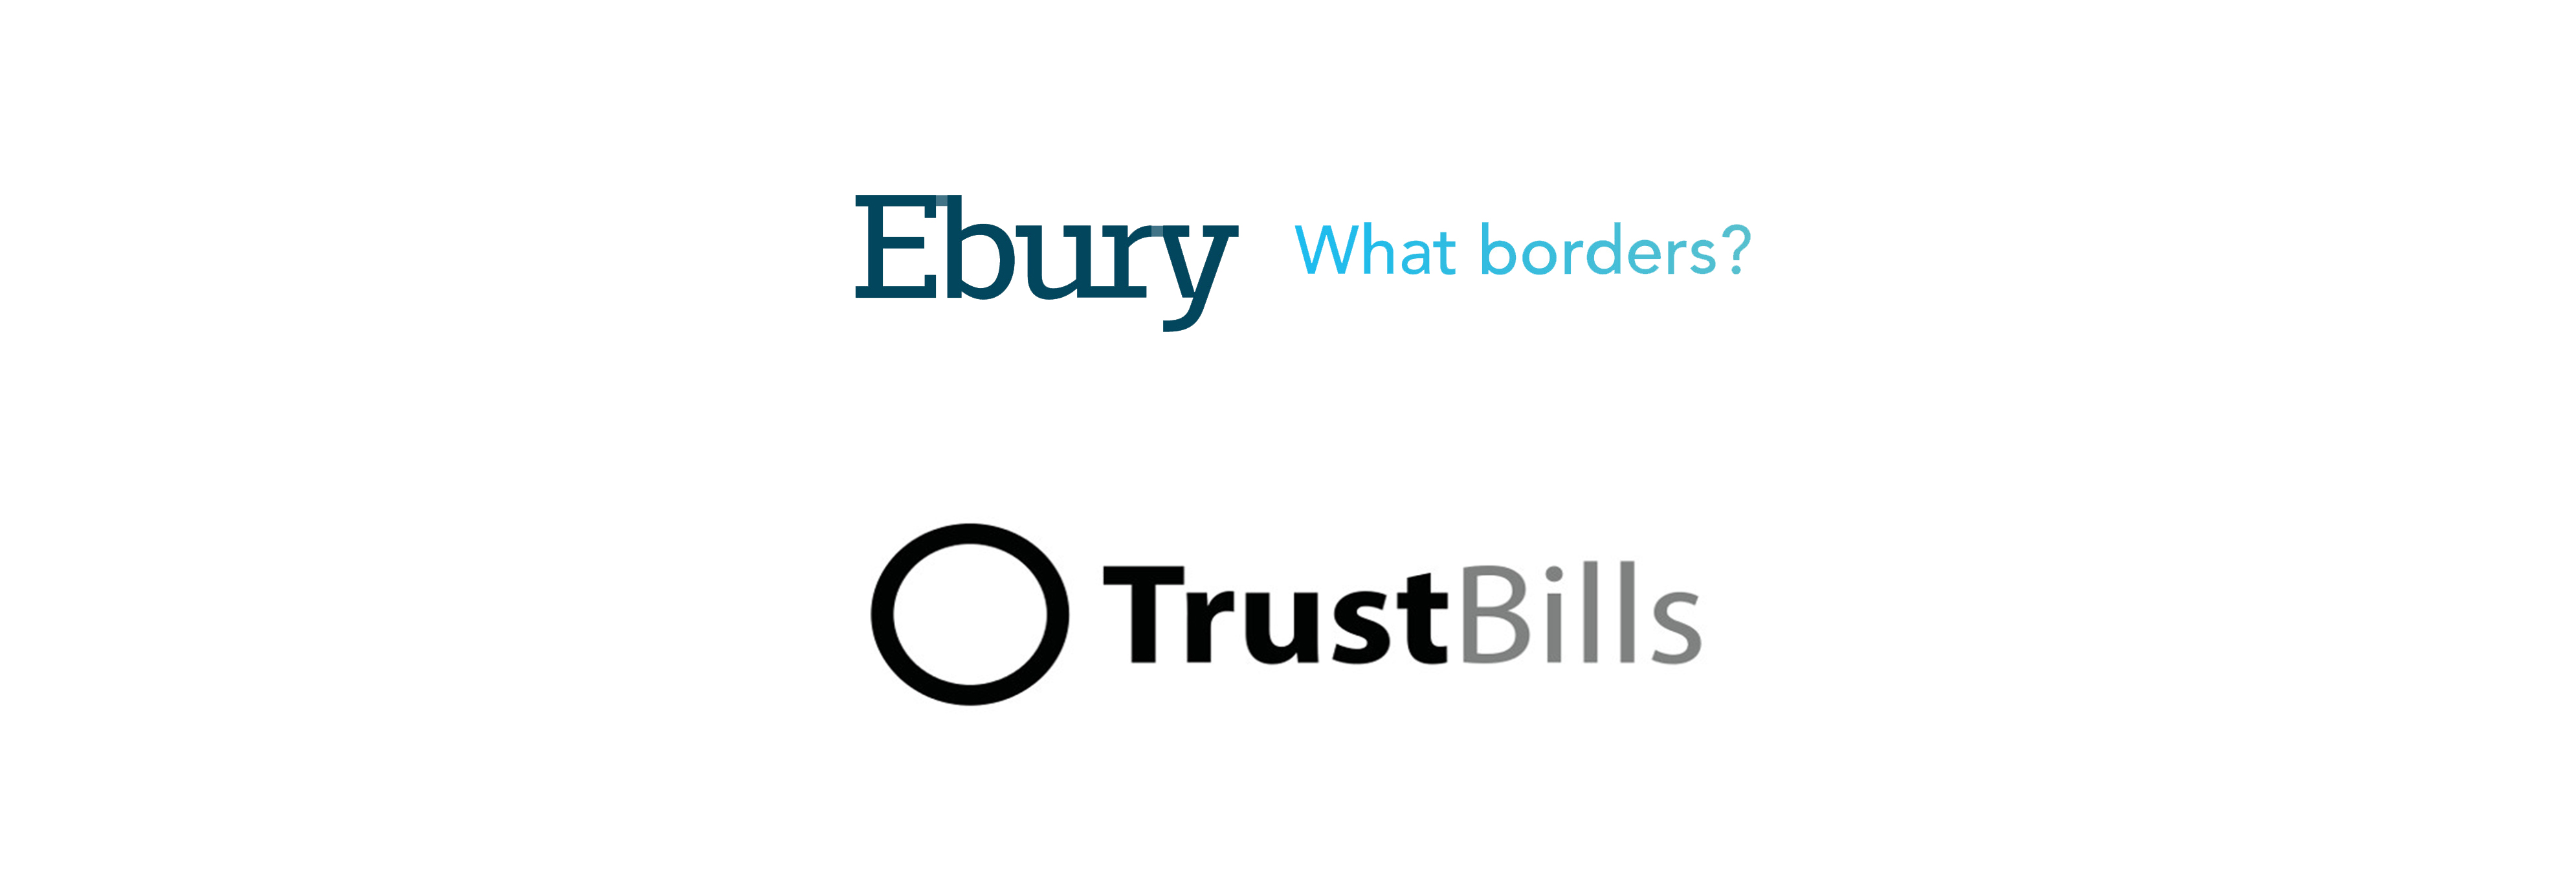 Ebury and TrustBills Partner to Provide Enhanced International Trade Services for Clients